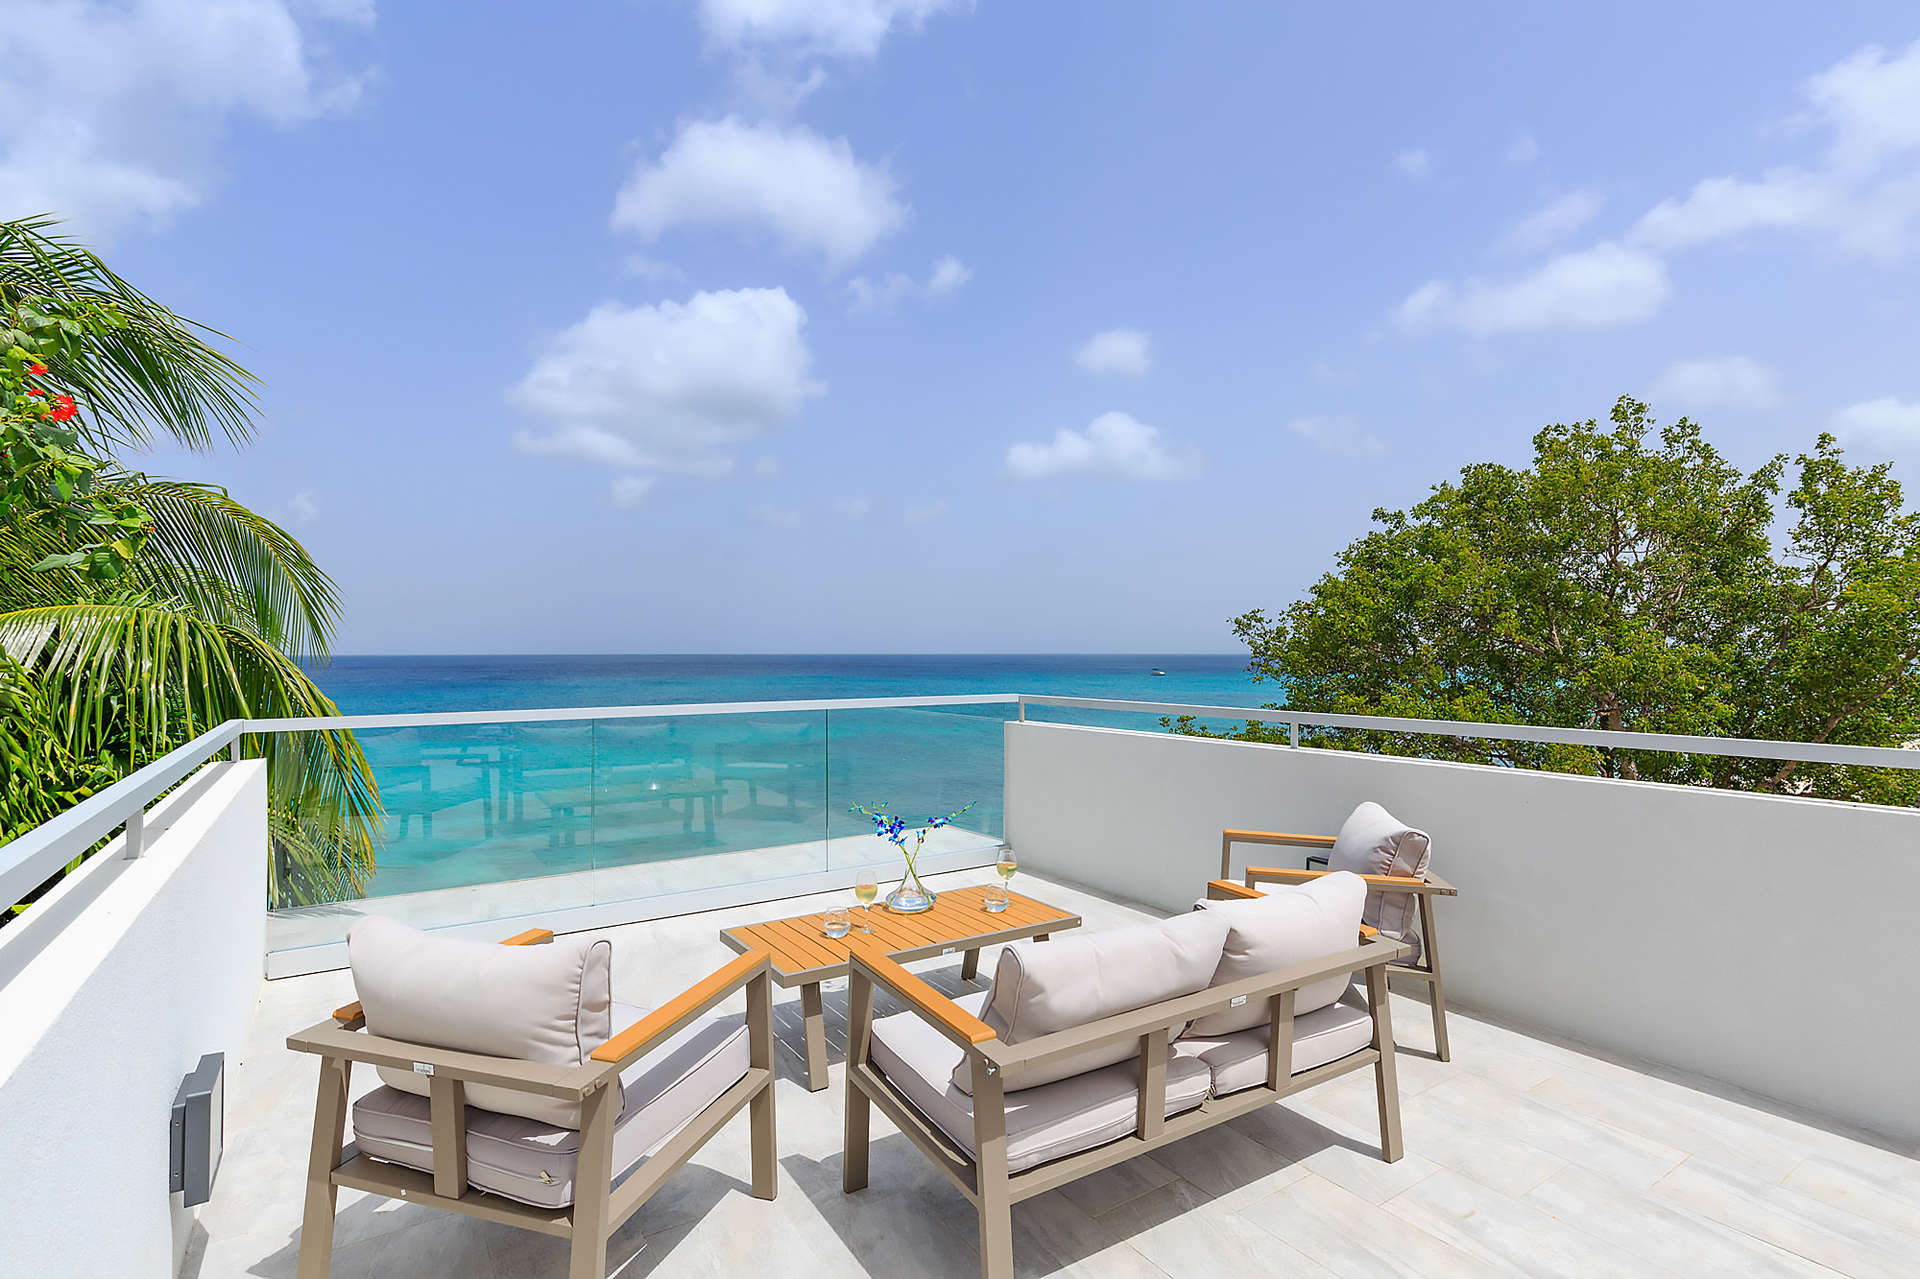 Luxury villa rentals caribbean - Barbados - St james - Prospect - Imagine Villa - Image 1/12